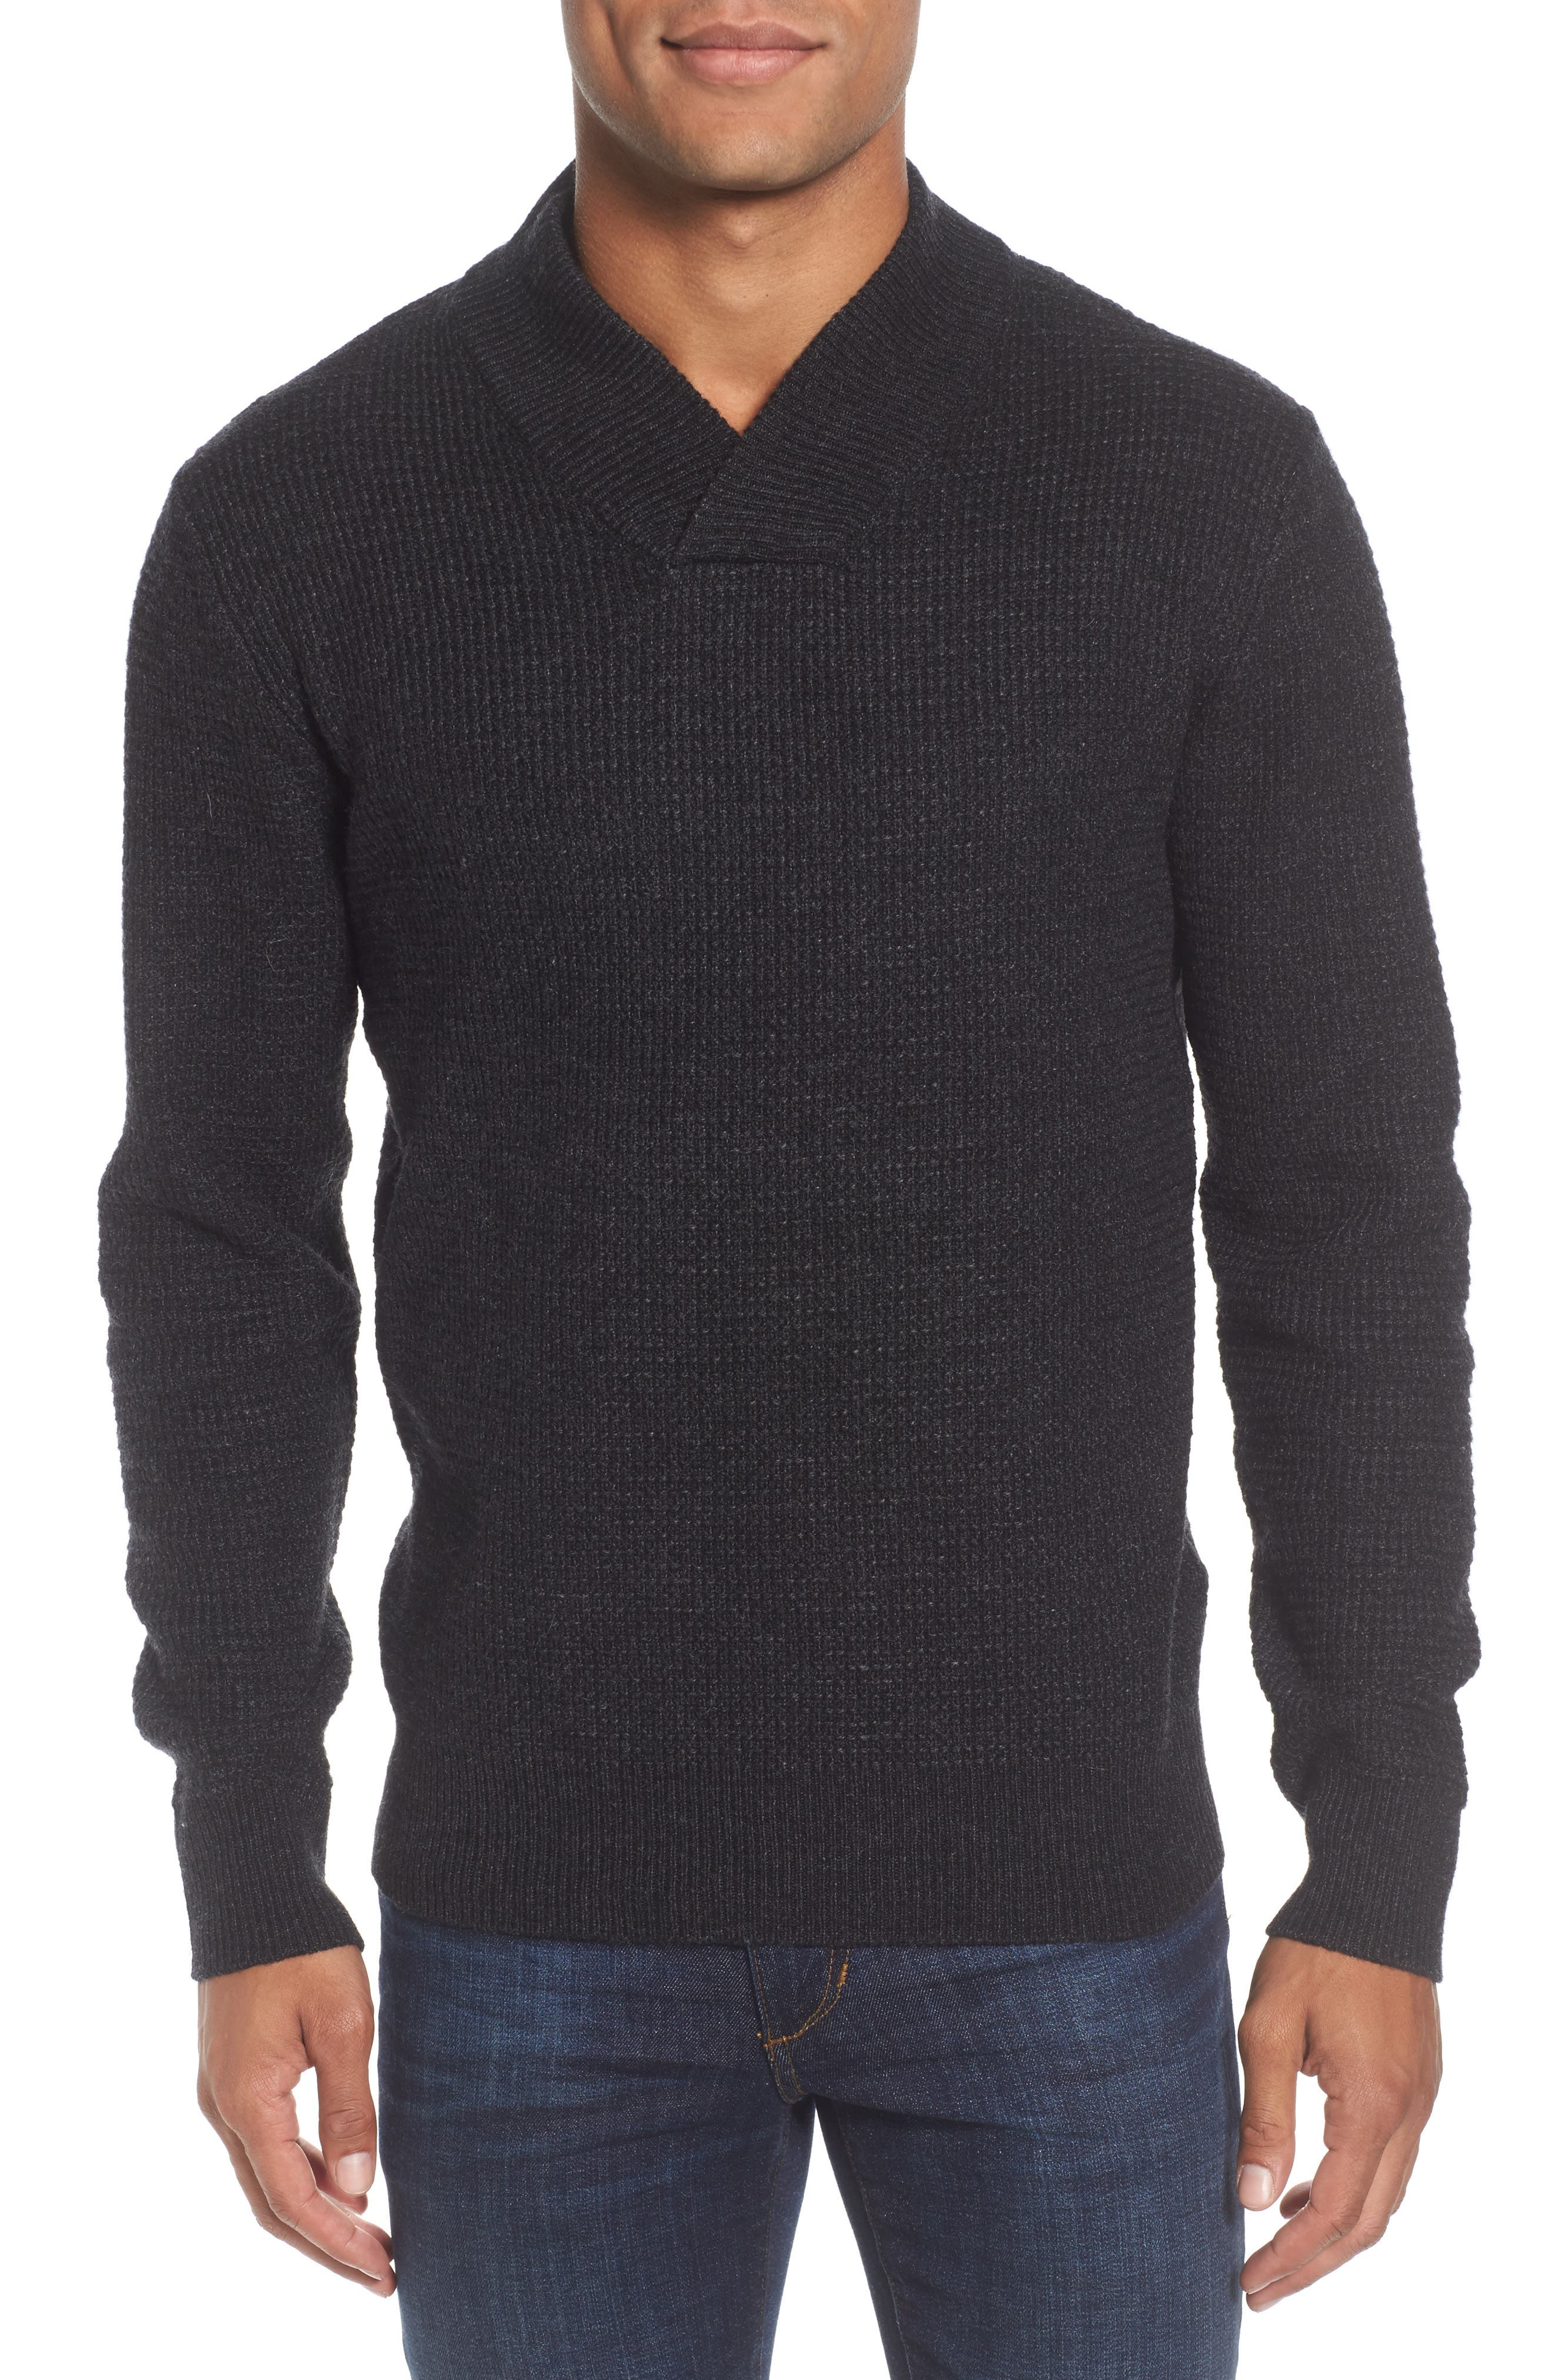 Schott Nyc Waffle Knit Thermal Wool Blend Pullover, Black